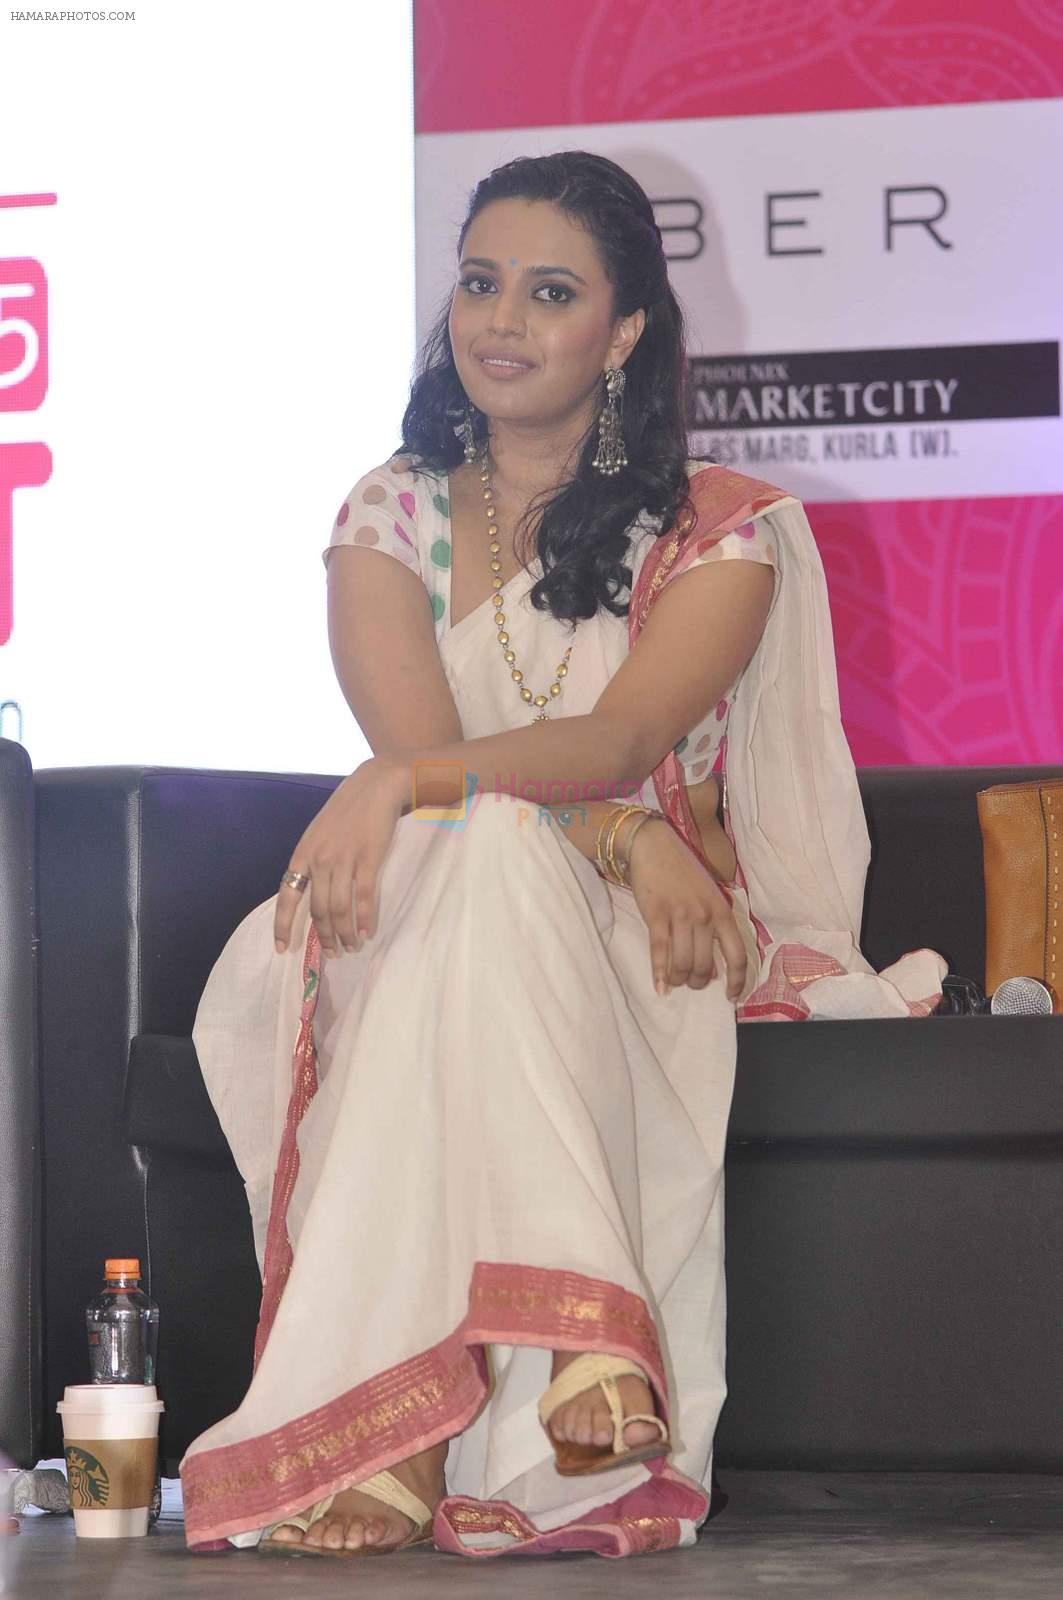 Swara Bhaskar at Phoneix Market City in Kurla, Mumbai on 28th June 2015